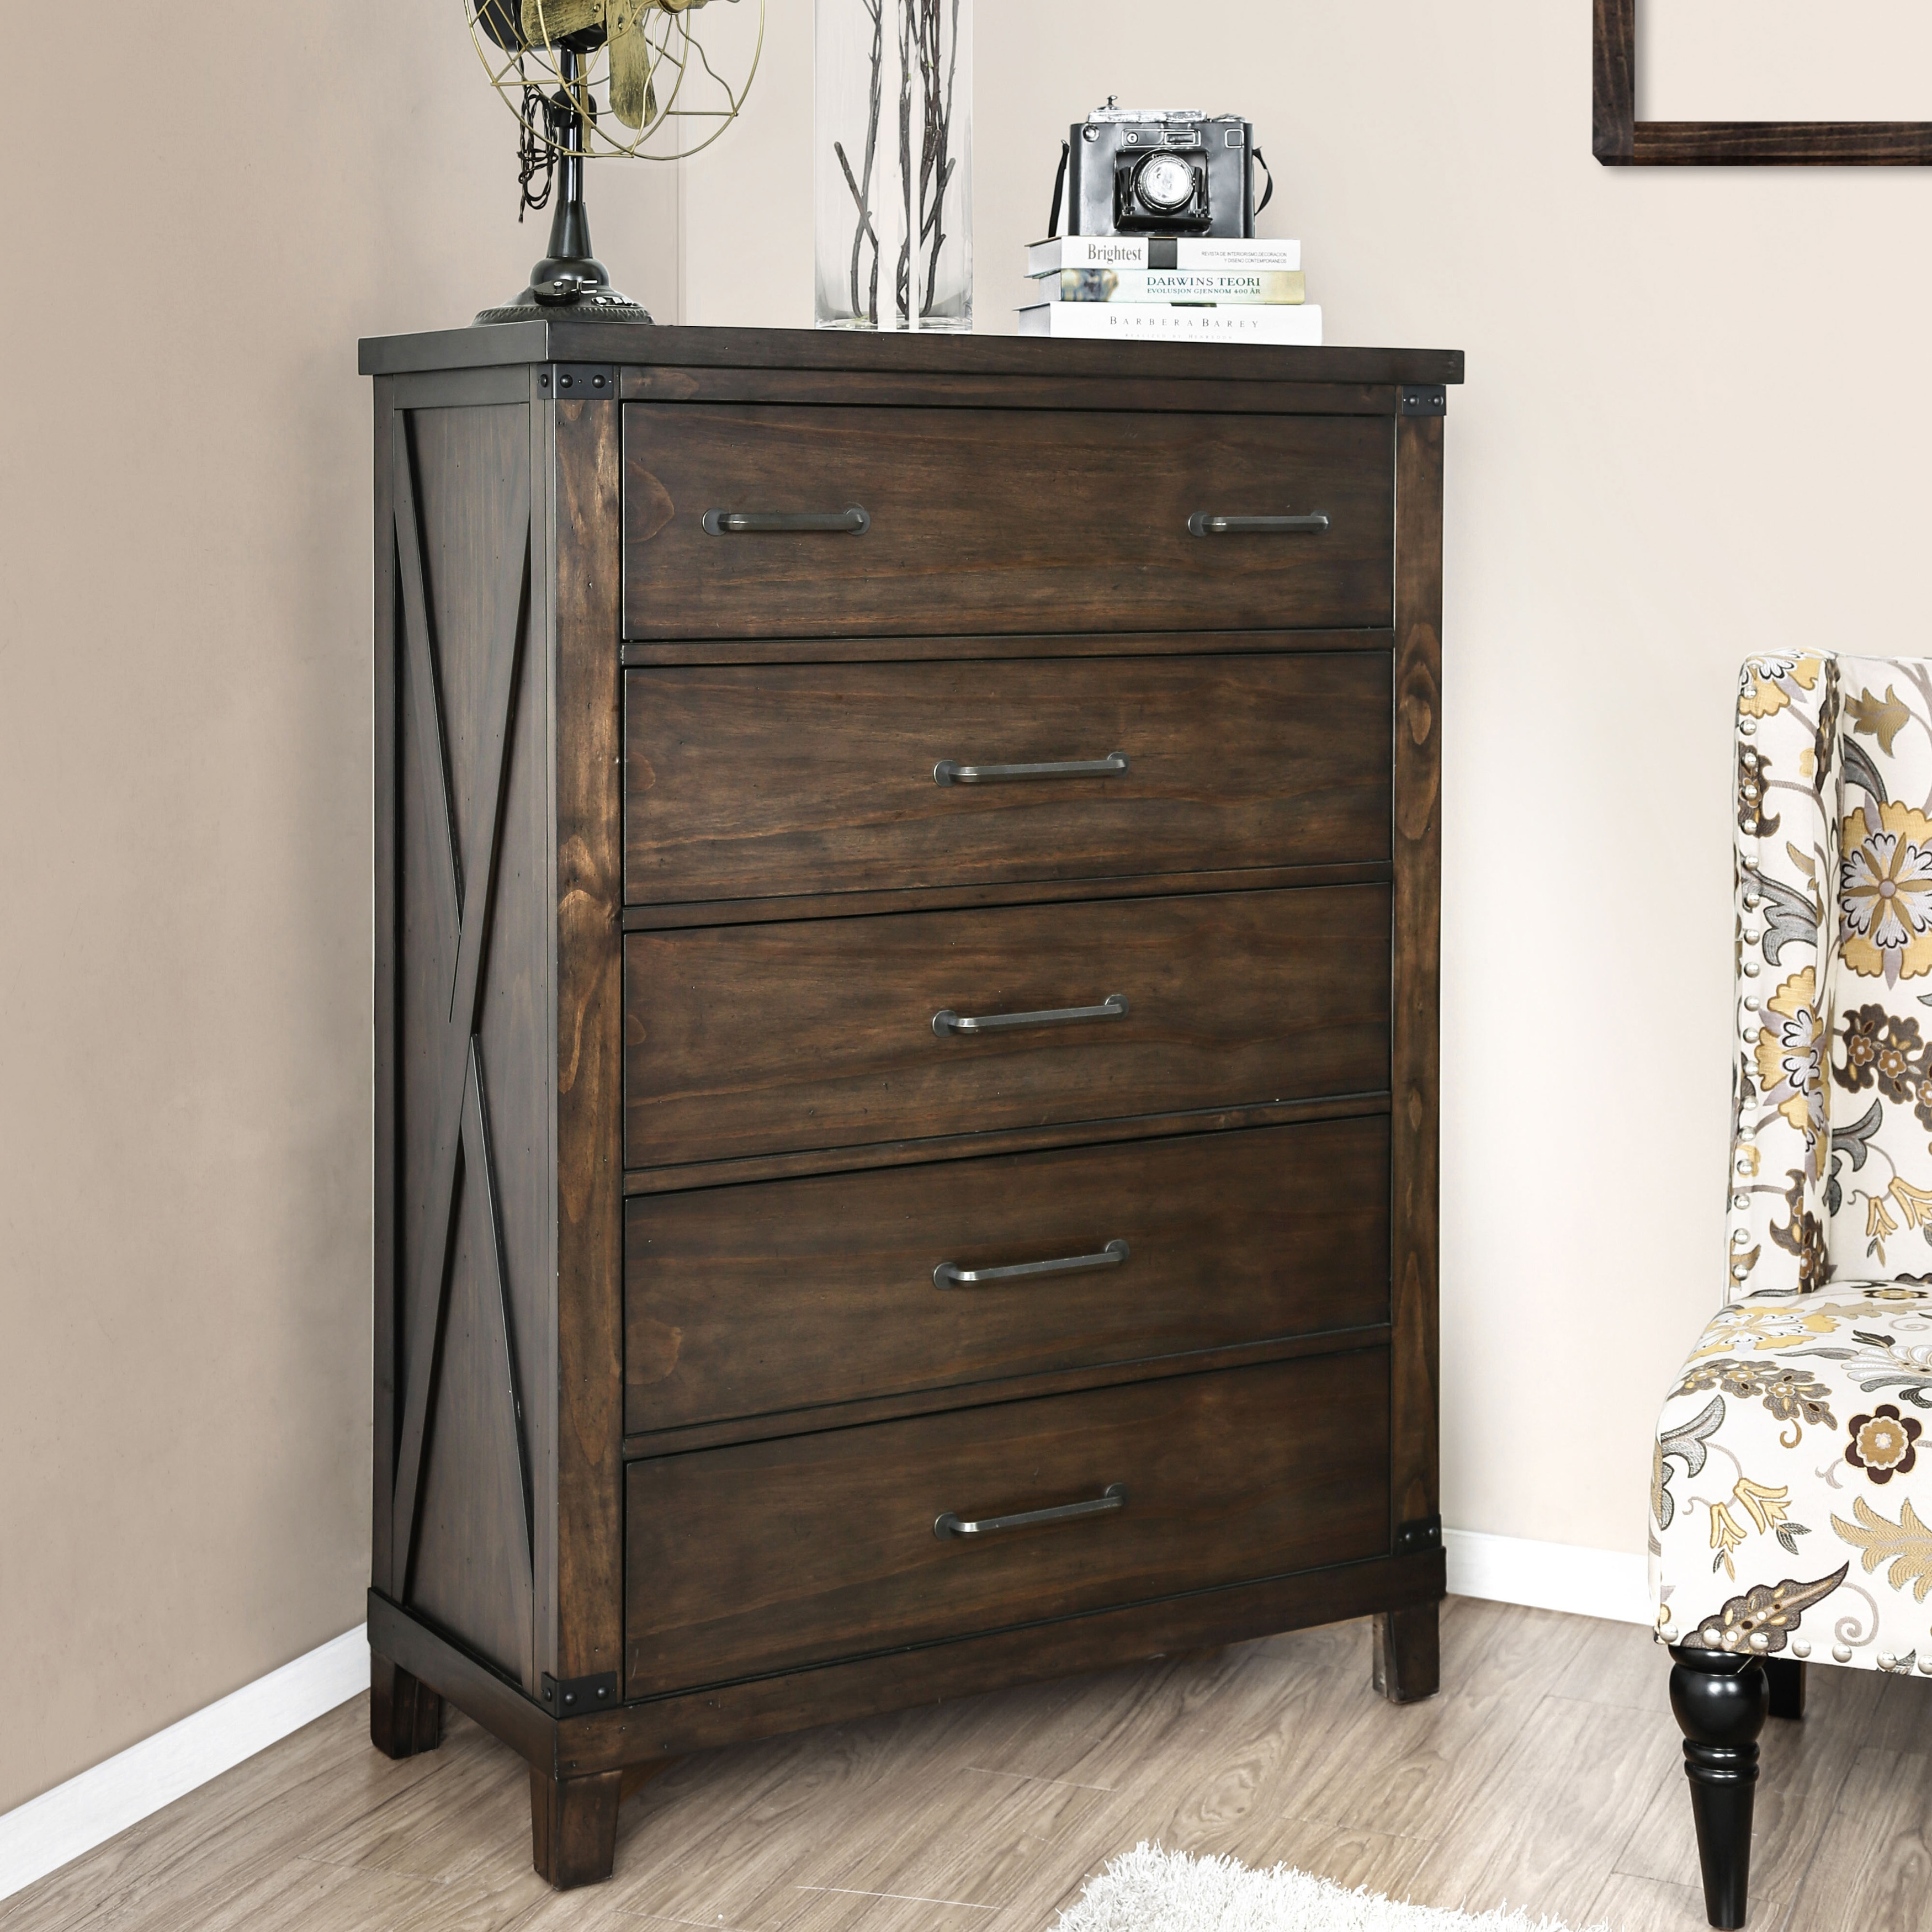 trim night hills drawer of hillsnight style threshold stand chest item cottage height products drawers rustic width vaughan bassett